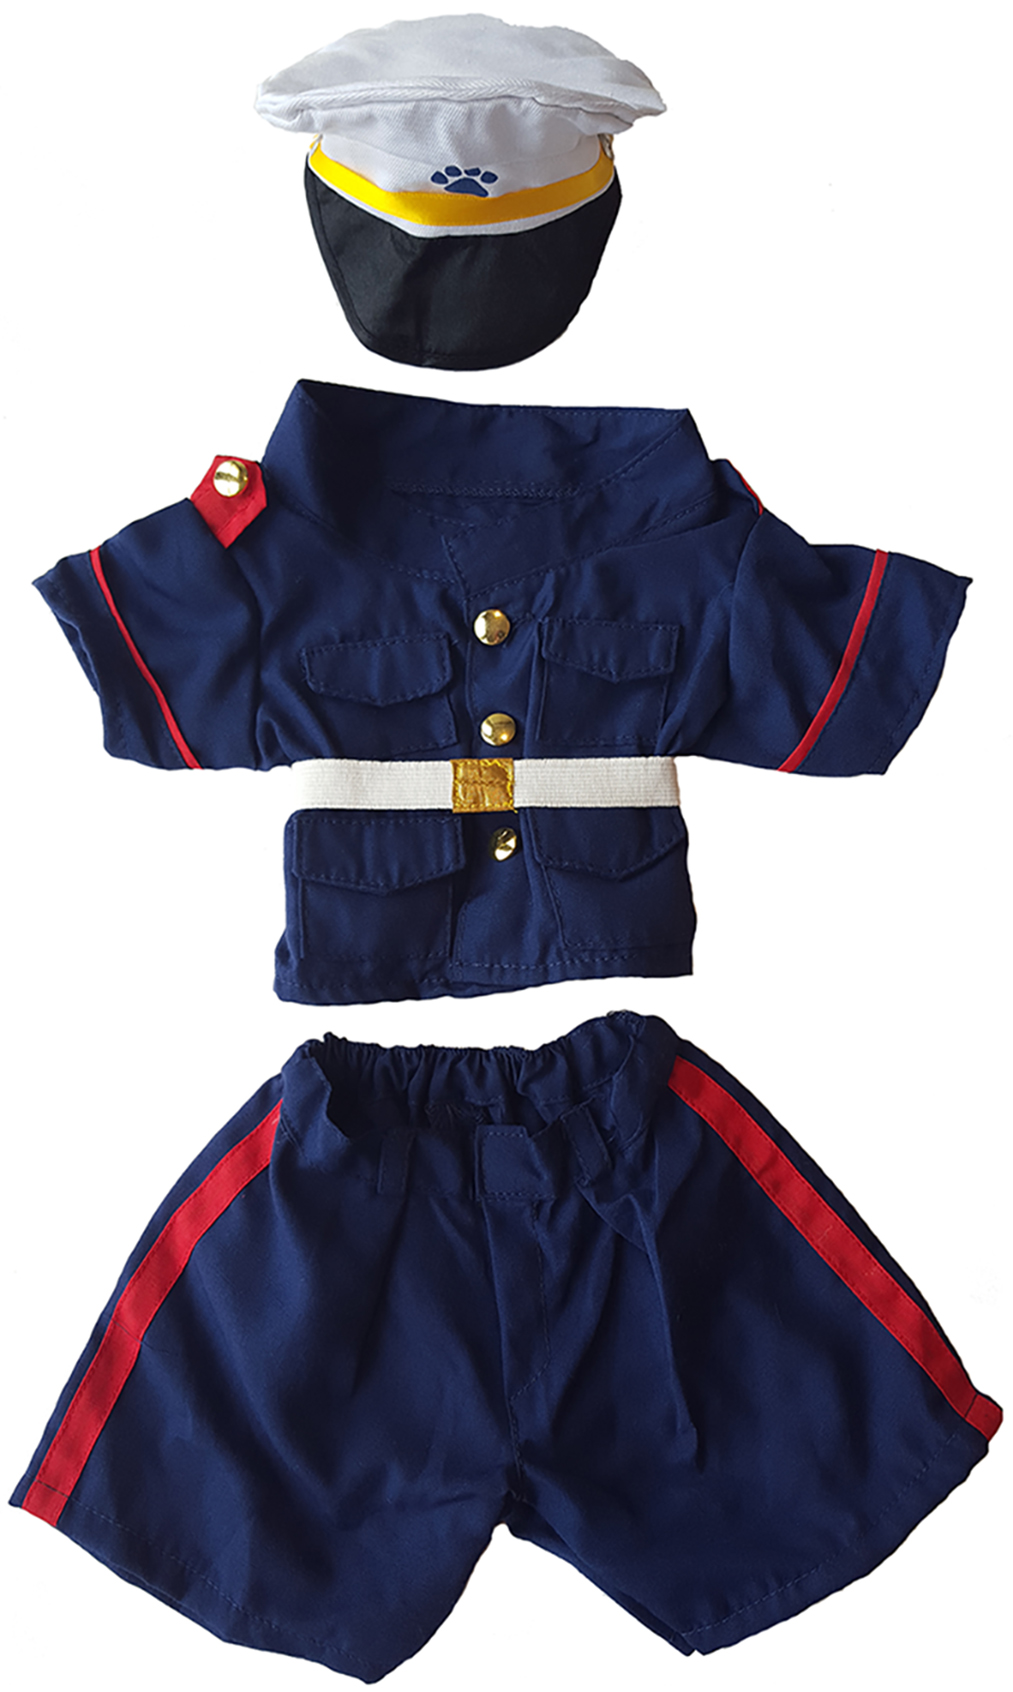 All Stars Hockey Uniform Teddy Bear Clothes Outfit Fits Most 14-18 Build-A-Bear and Make Your Own Stuffed Animals